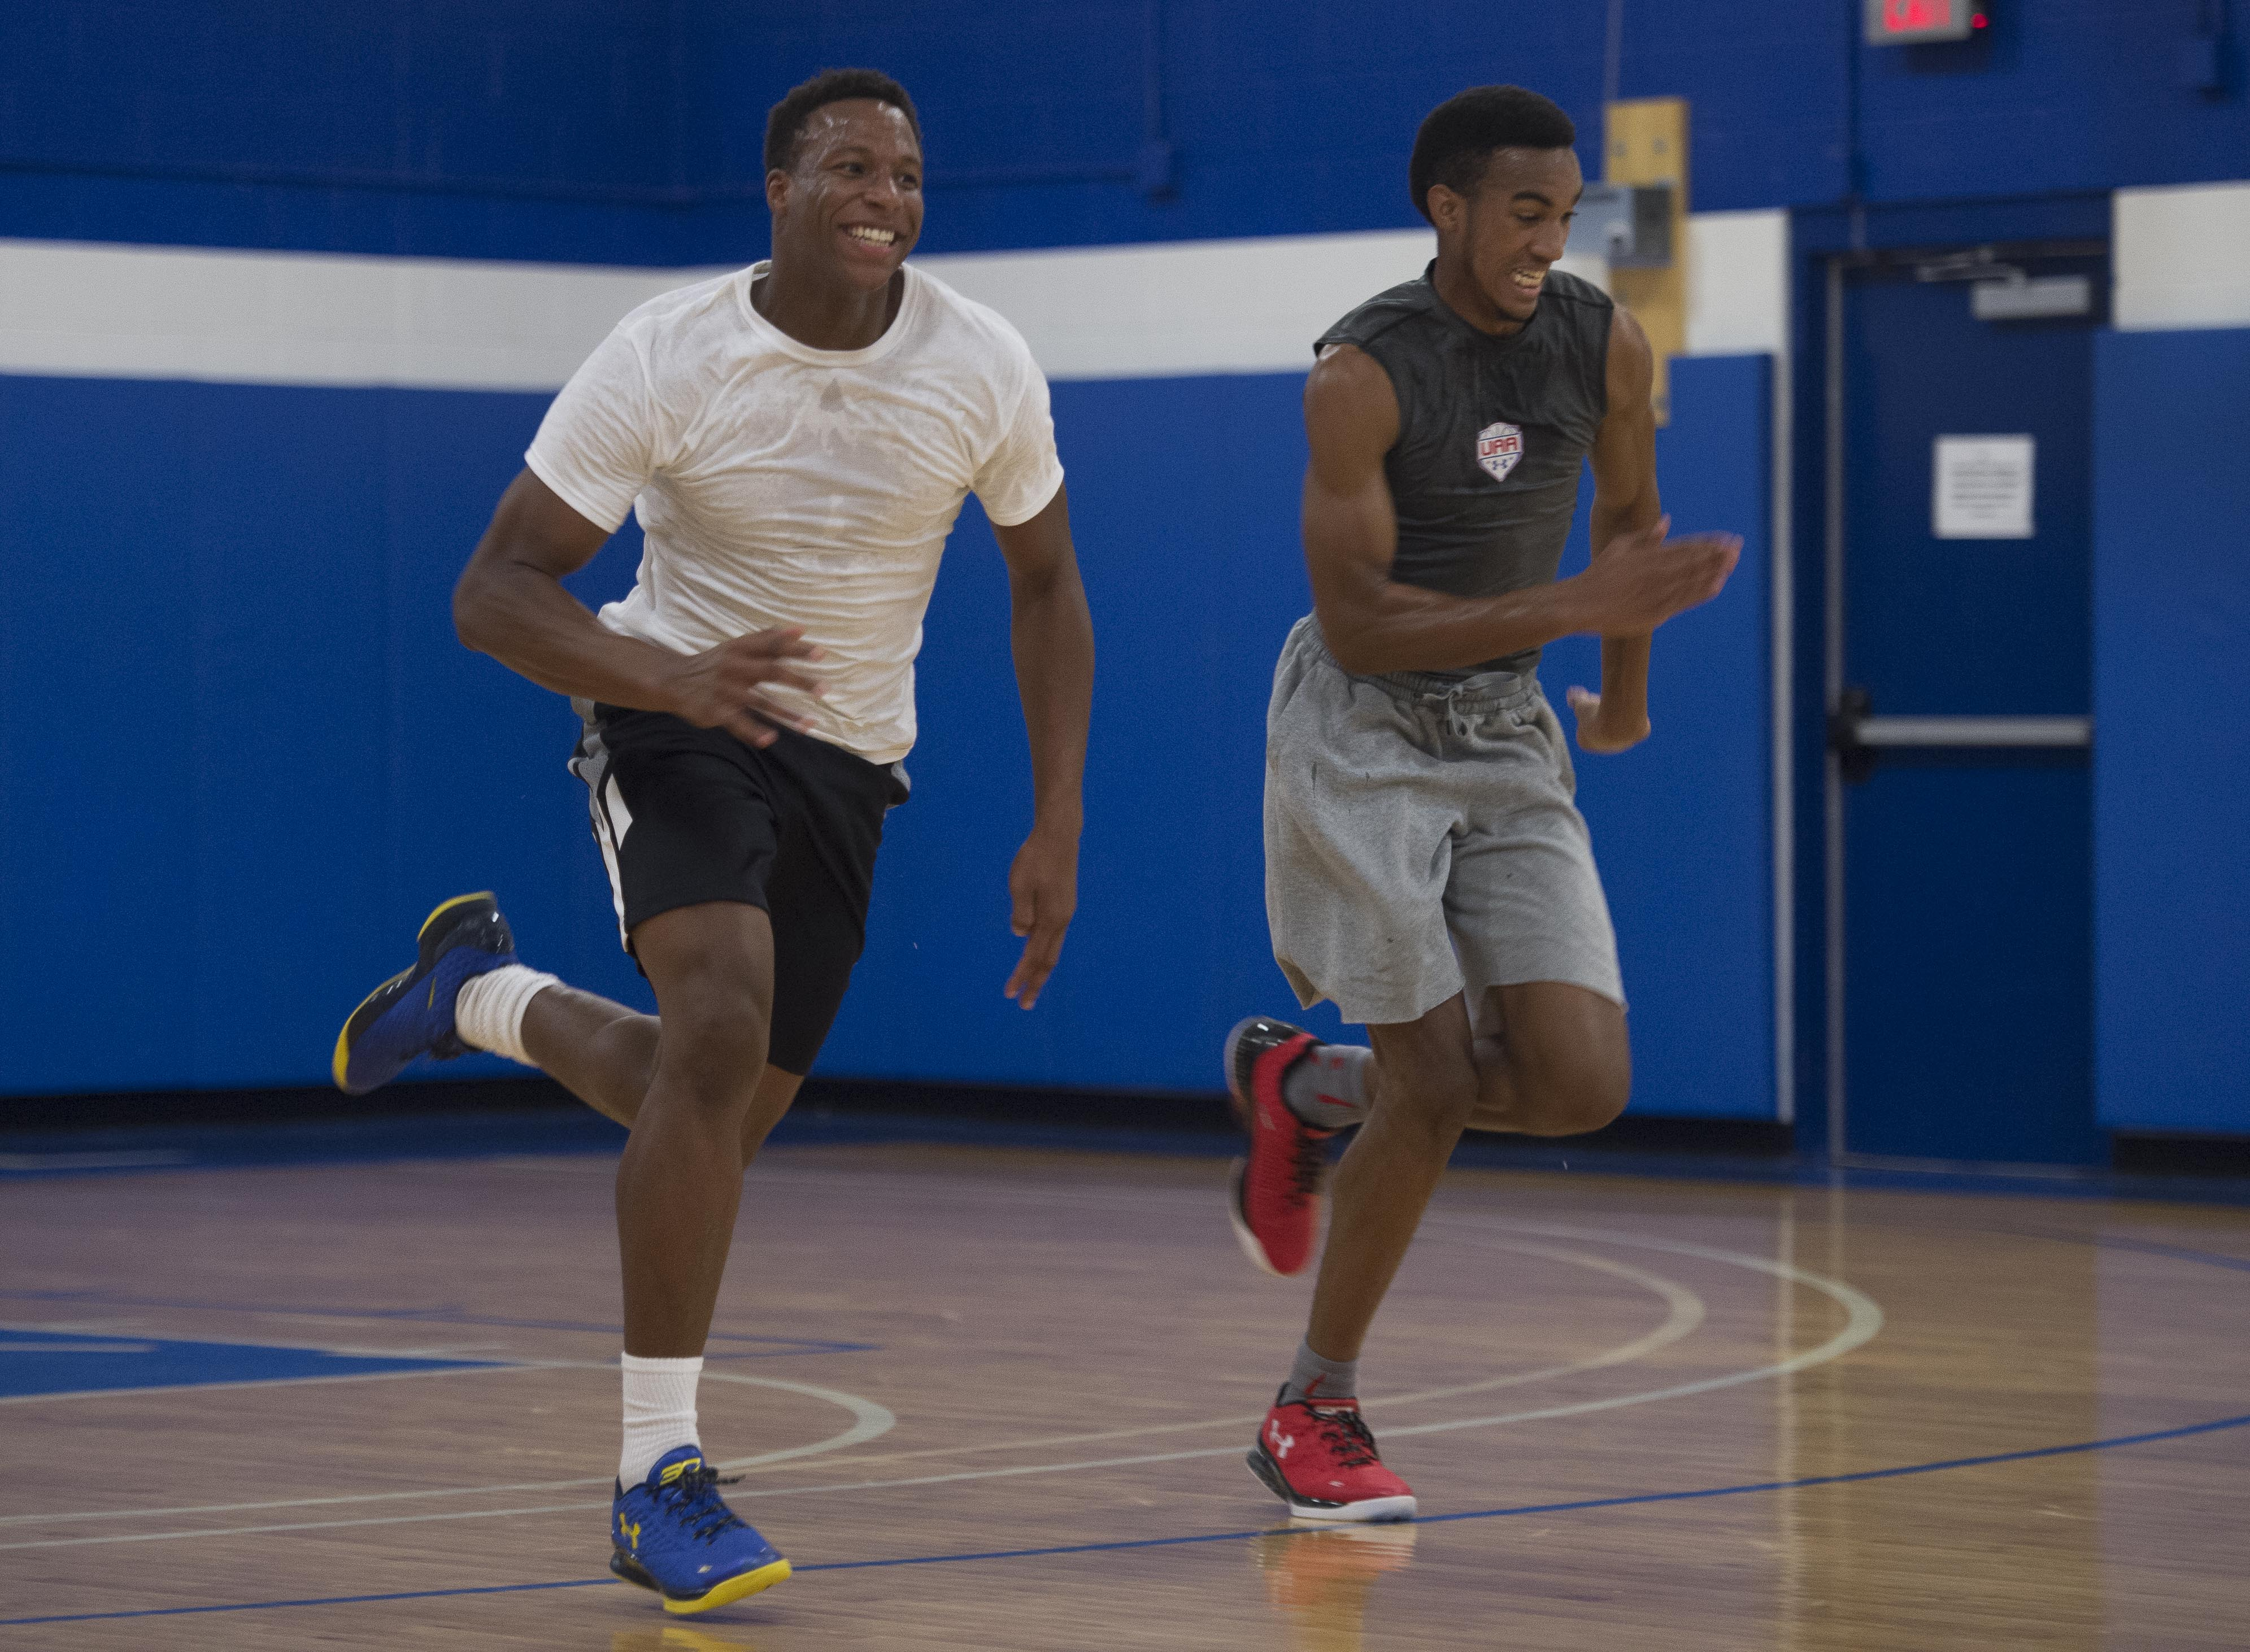 Advance Preparatory International small forward Mark Vital (left) and shooting guard Terrance Ferguson (right) during practice at the Mark Cuban Heroes Basketball Center. (Photo: Jerome Miron, USA TODAY Sports)